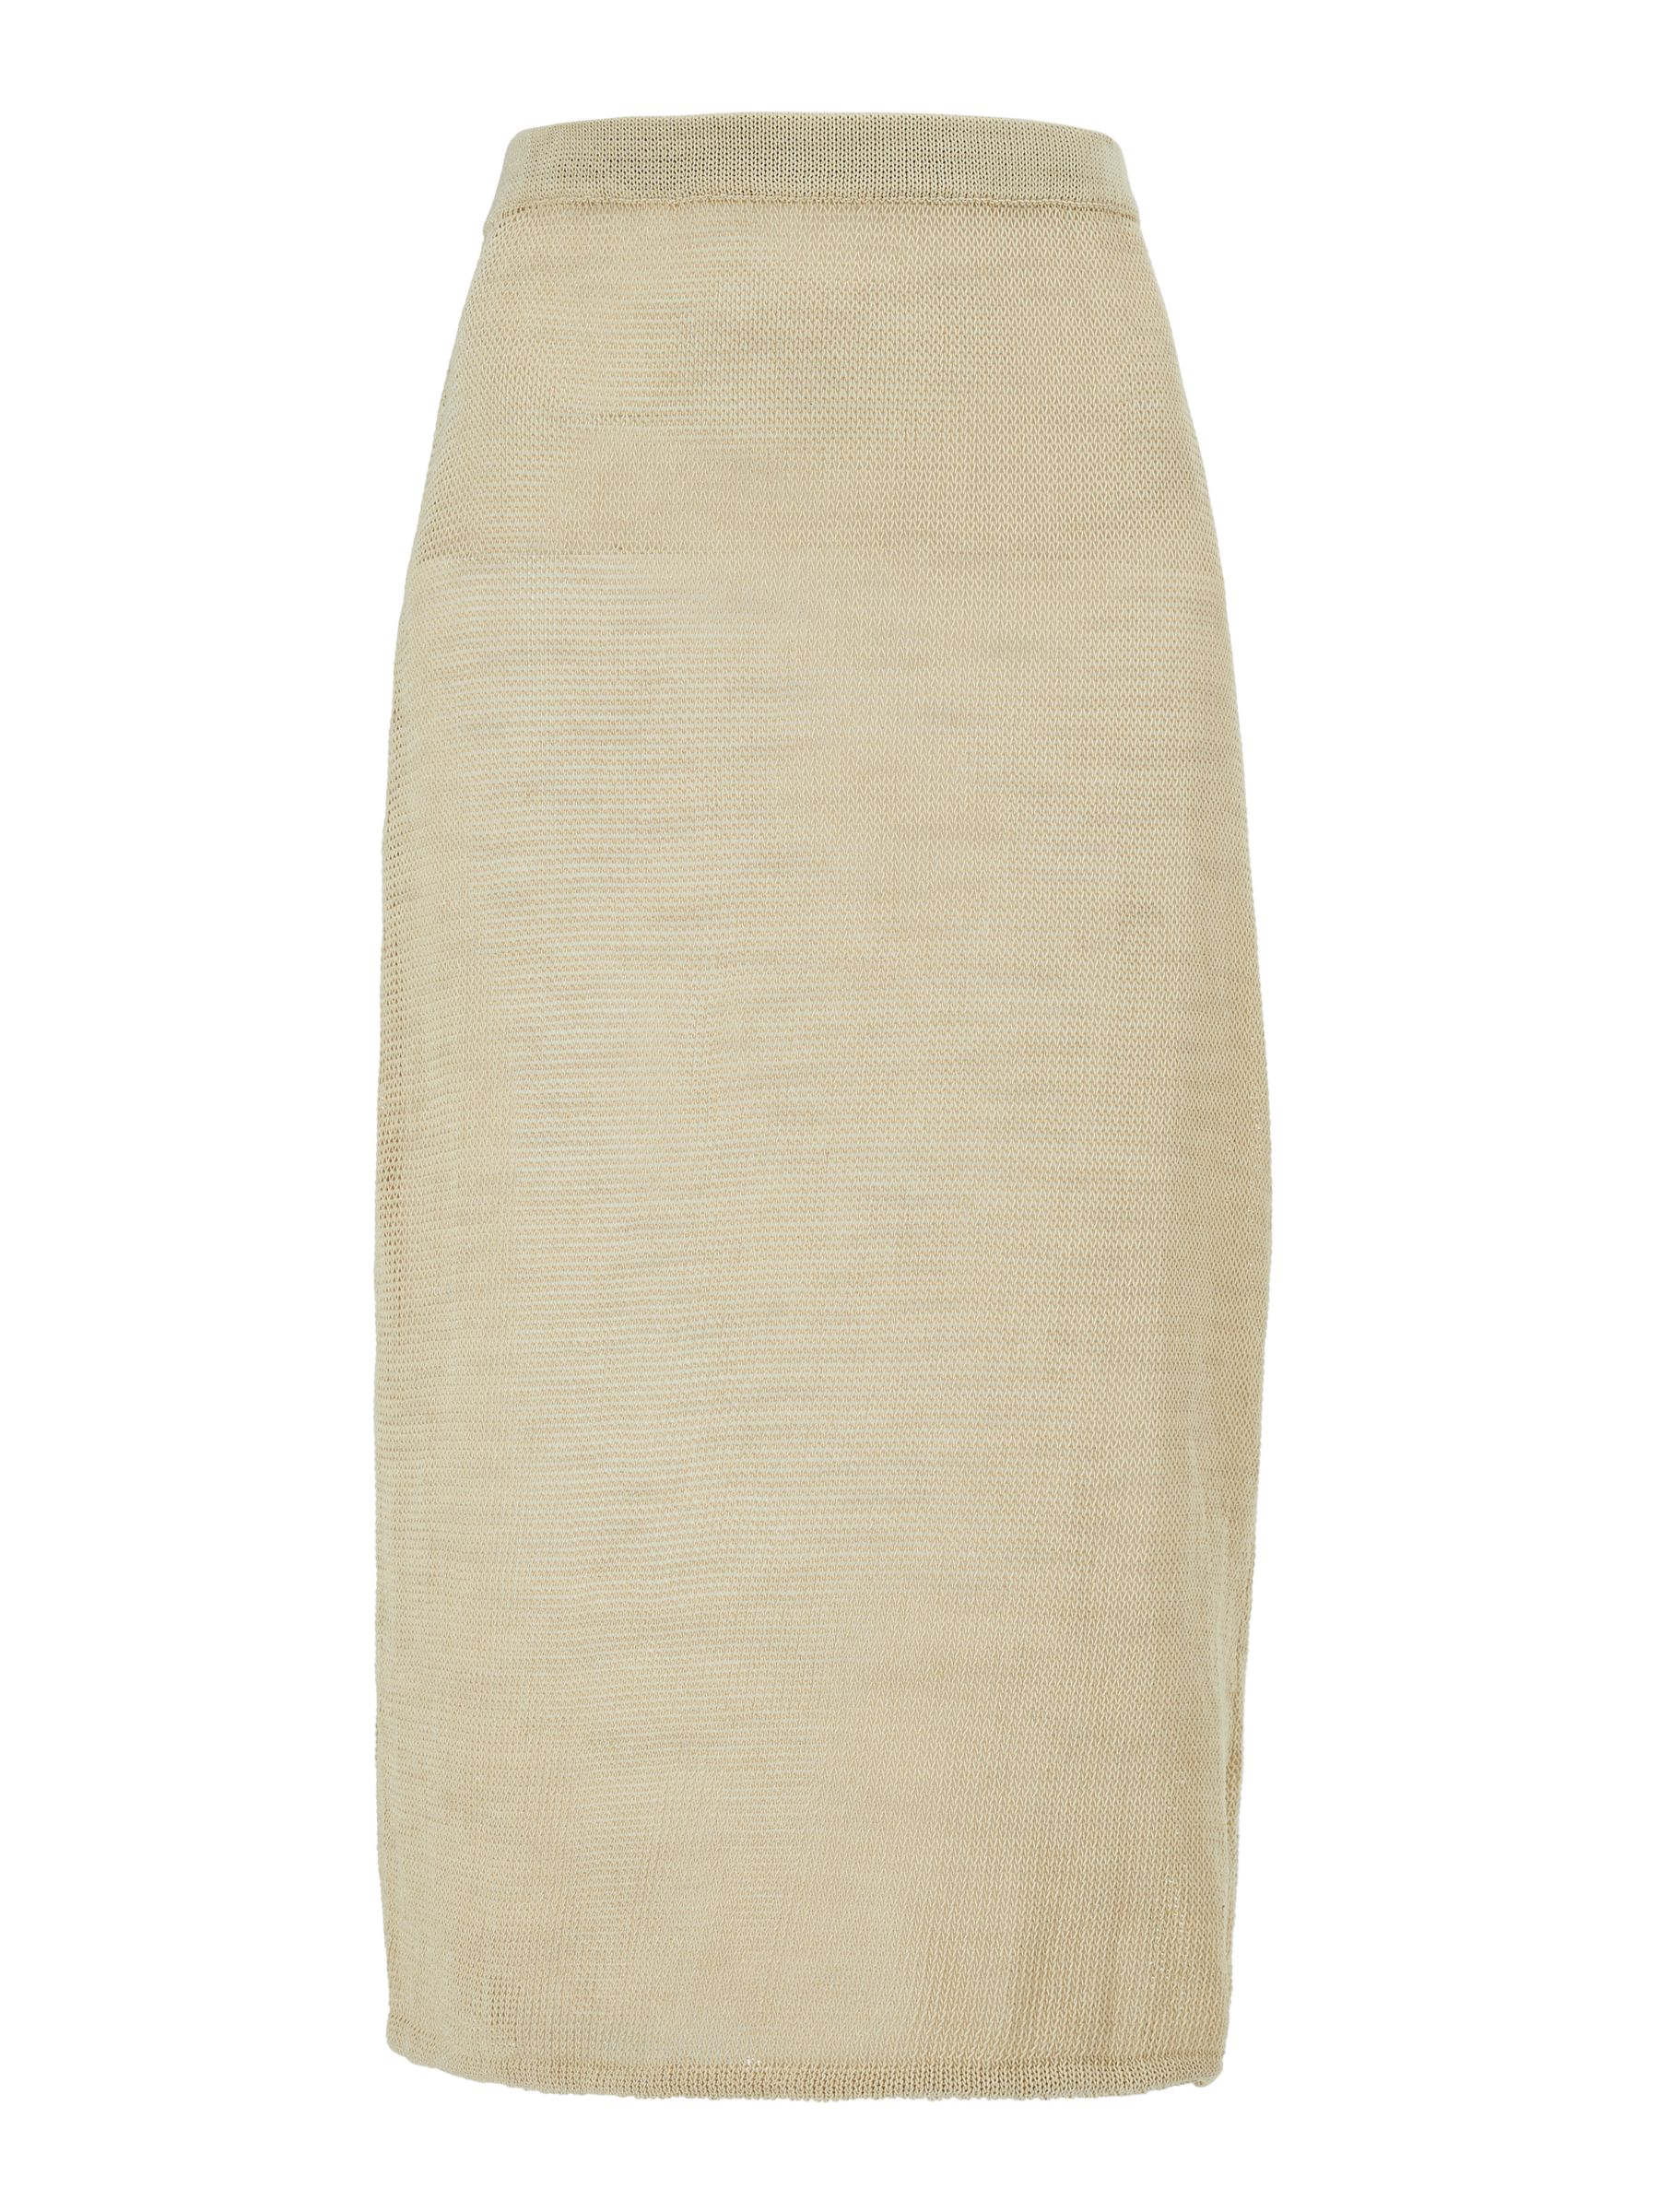 BuyModern Rarity J. JS Lee Open Knit Midi Skirt, Gold, 10 Online at johnlewis.com